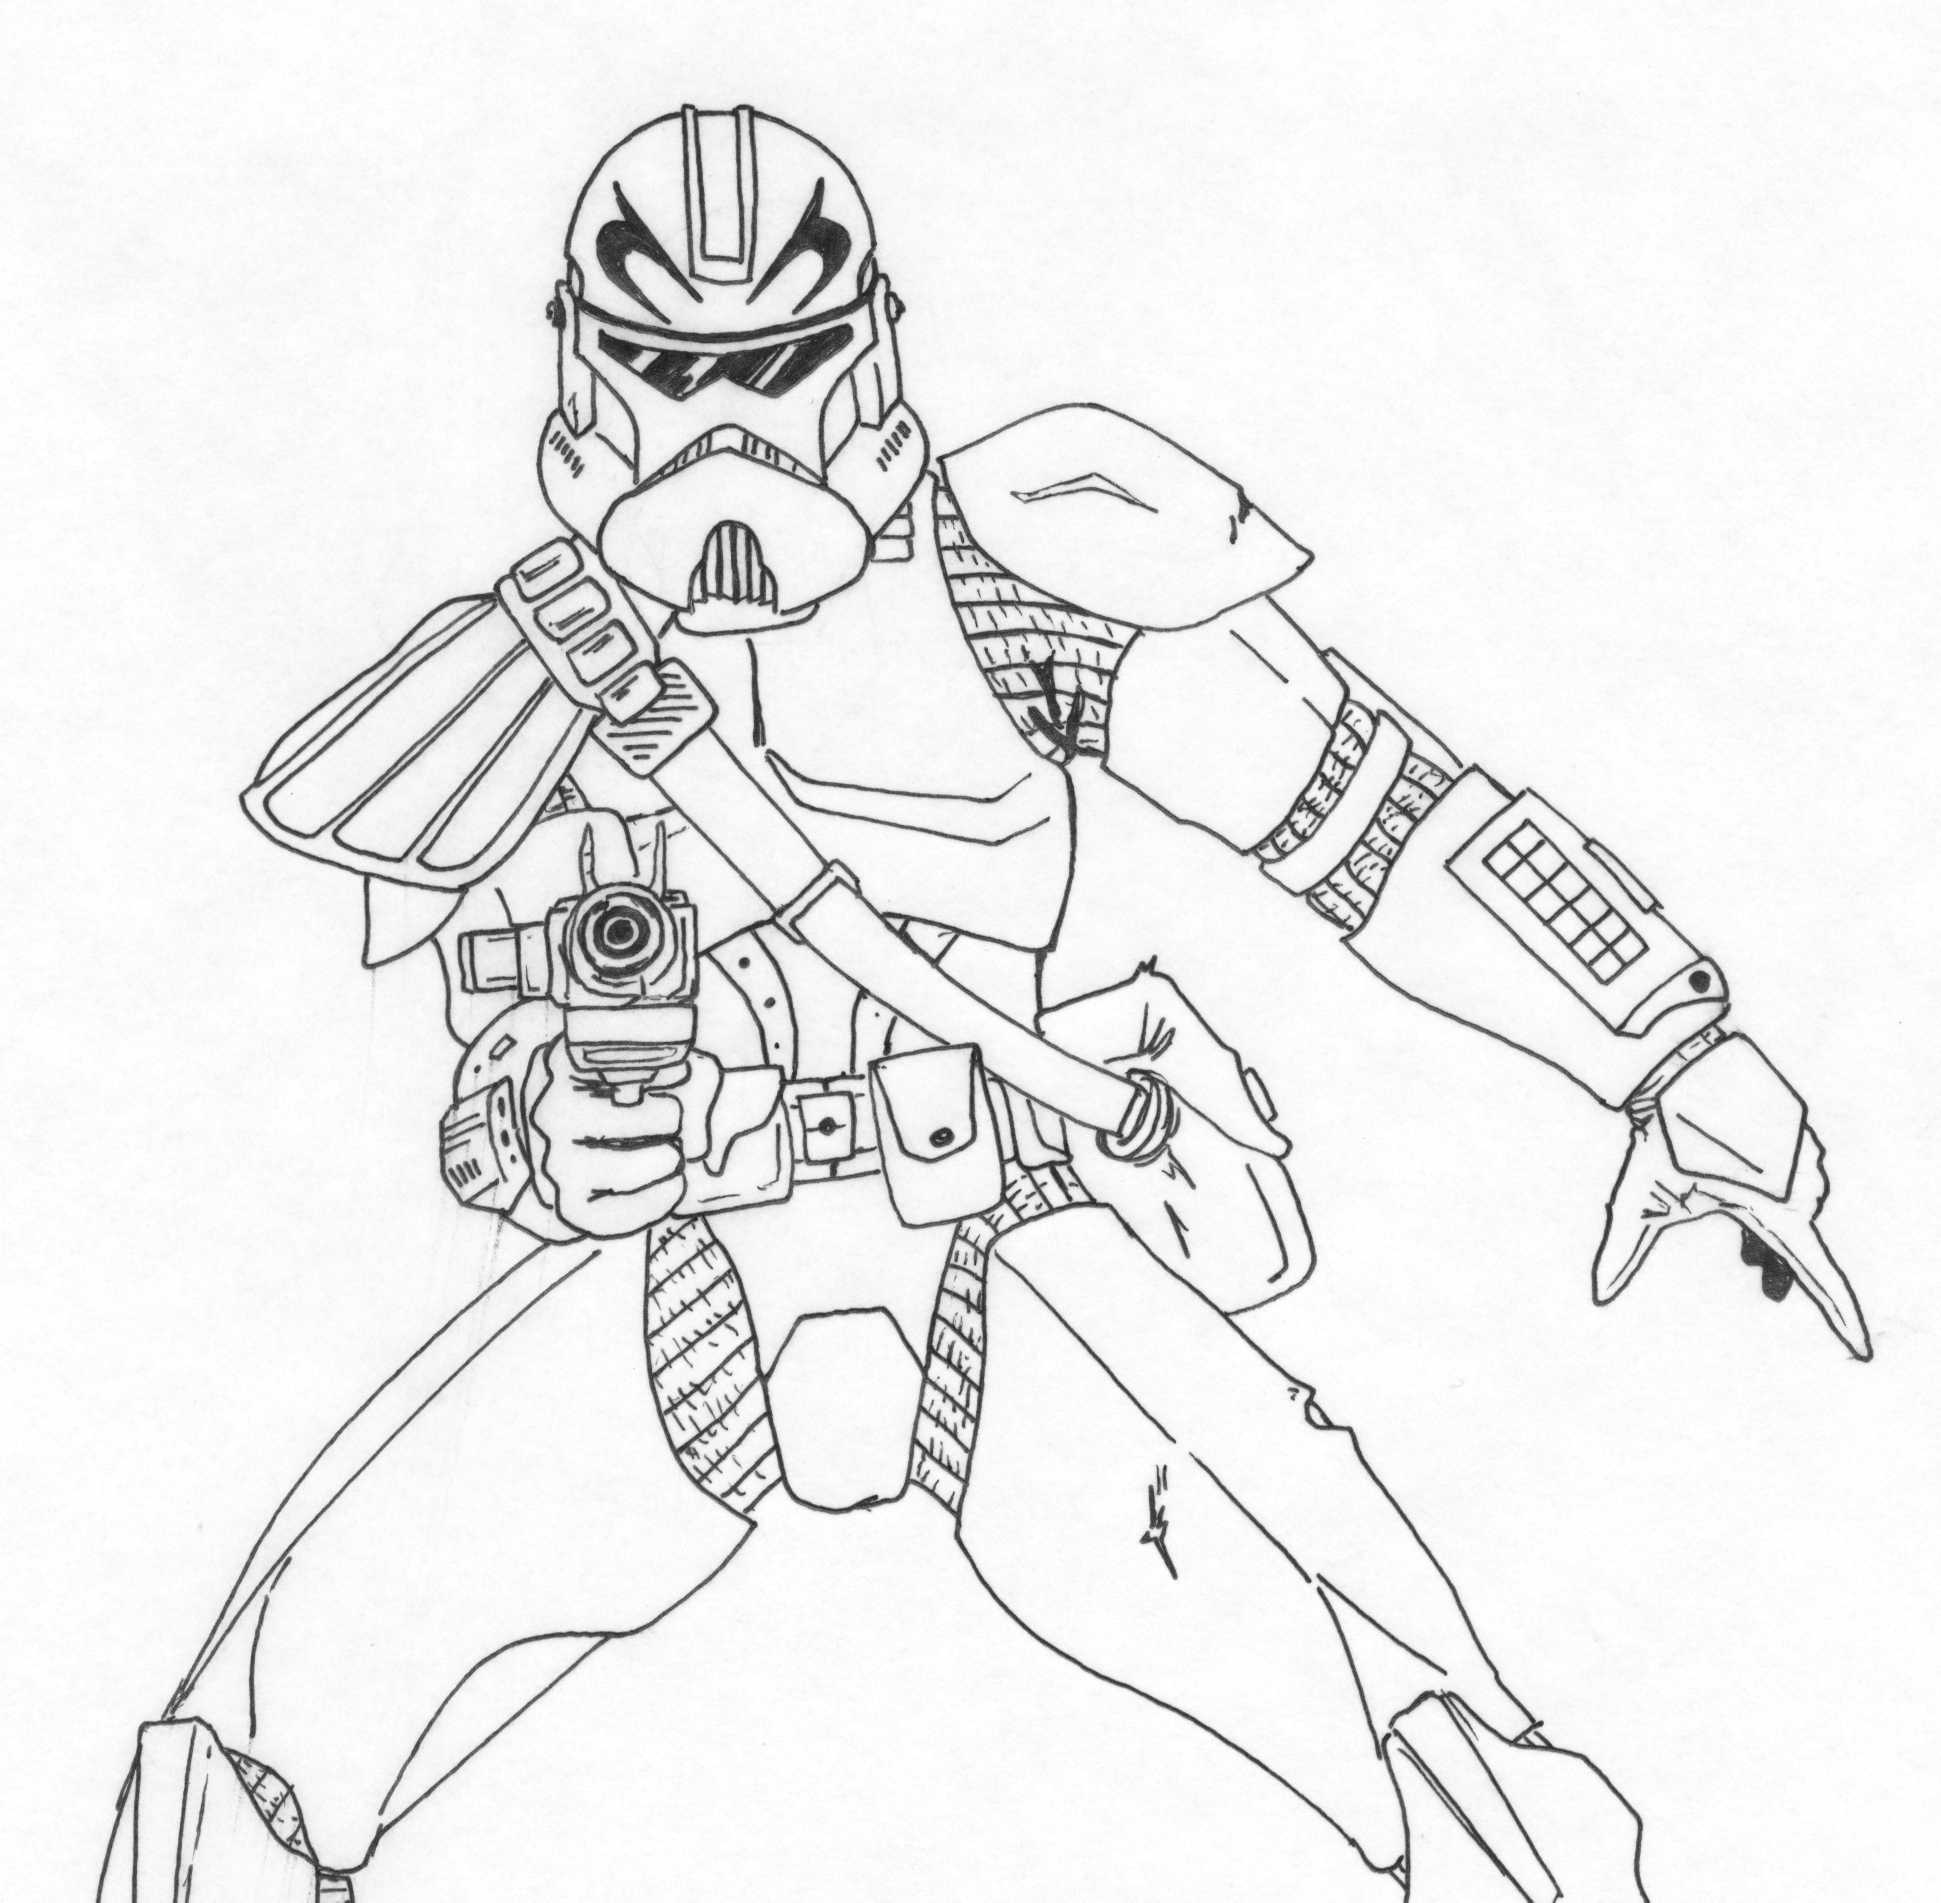 Adult Beauty Captain Rex Coloring Pages Images best star wars captain rex coloring pages az page gallery images